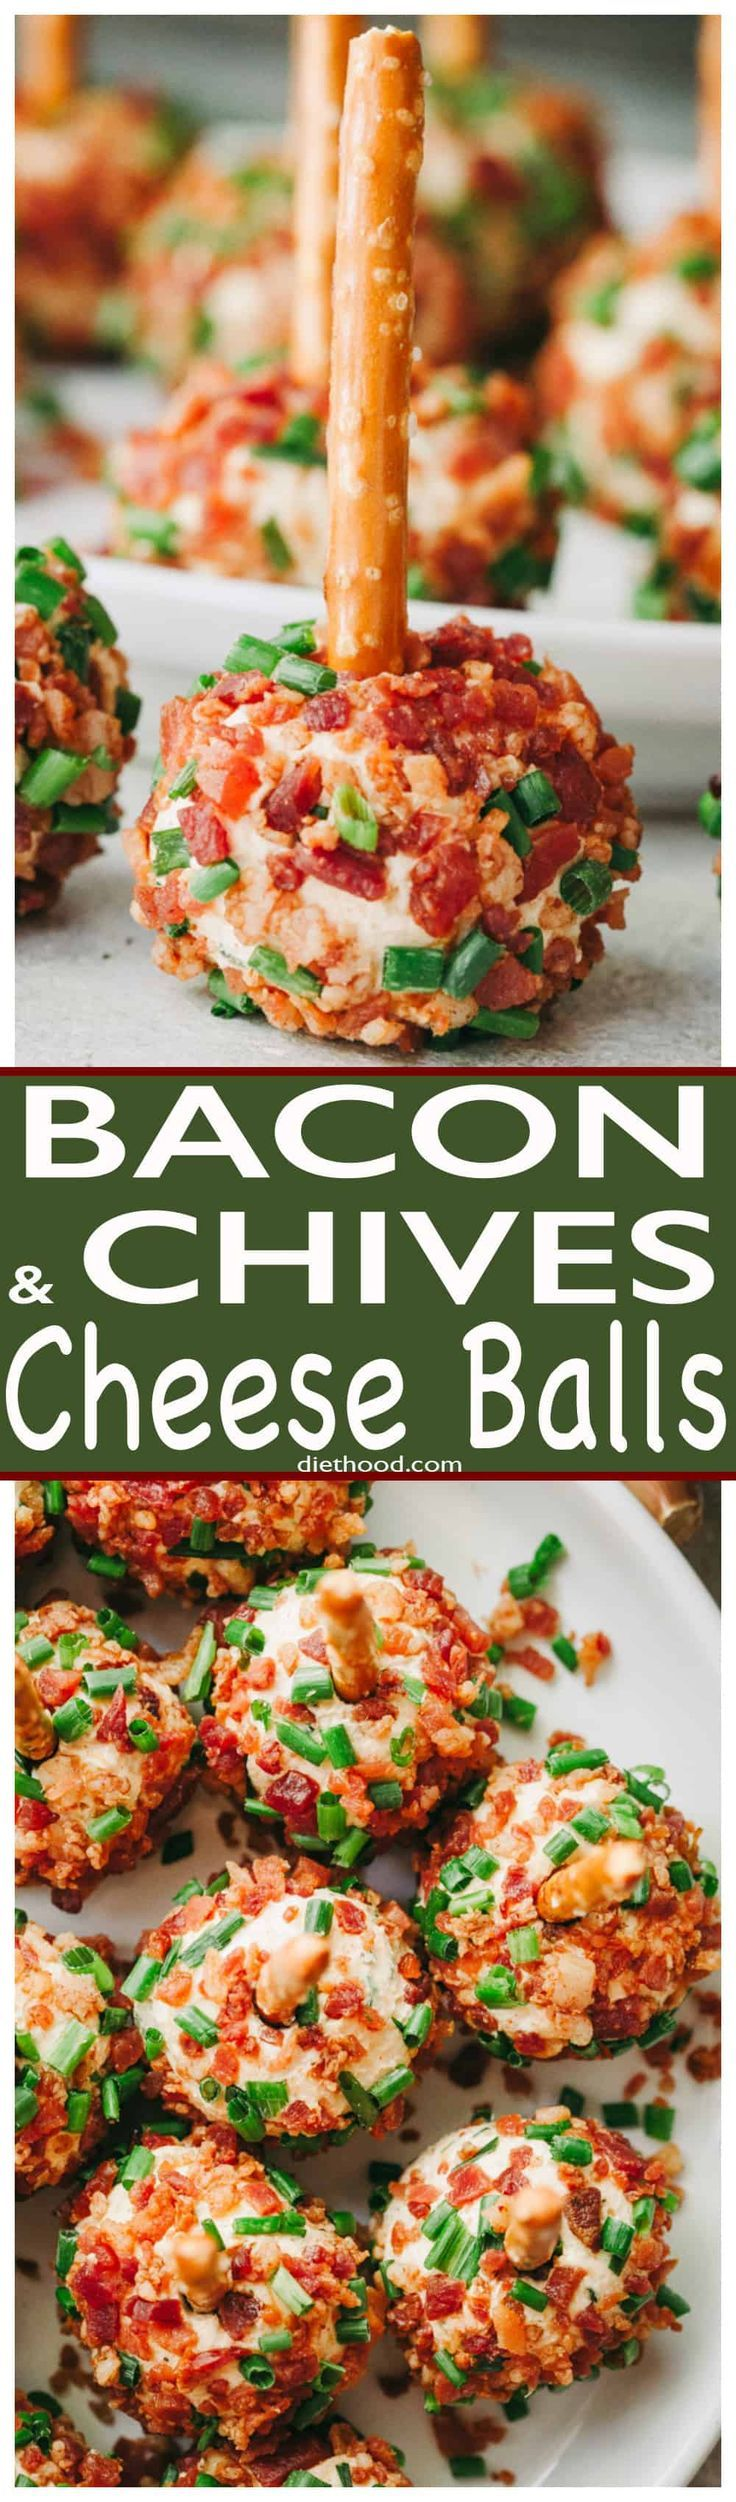 Bacon and Chives Cheese Balls Recipe - Easy, cheesy and bacony bite-size appetizer ideal for your Holiday parties or even game days! #holidays #appetizers